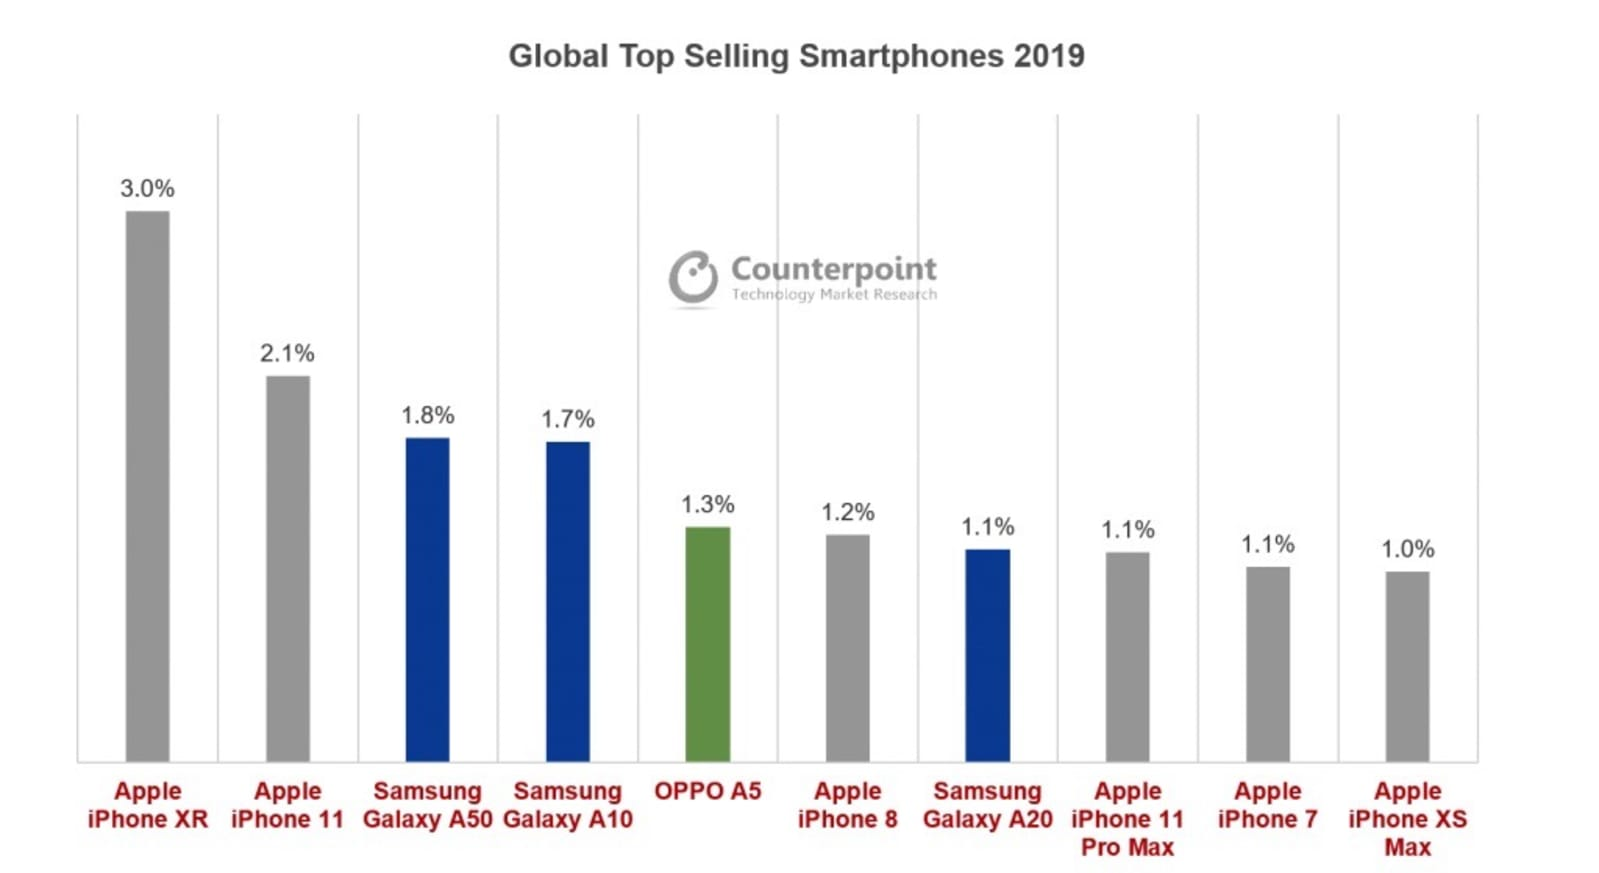 Top 10 phones of 2019 by sales according to Counterpoint